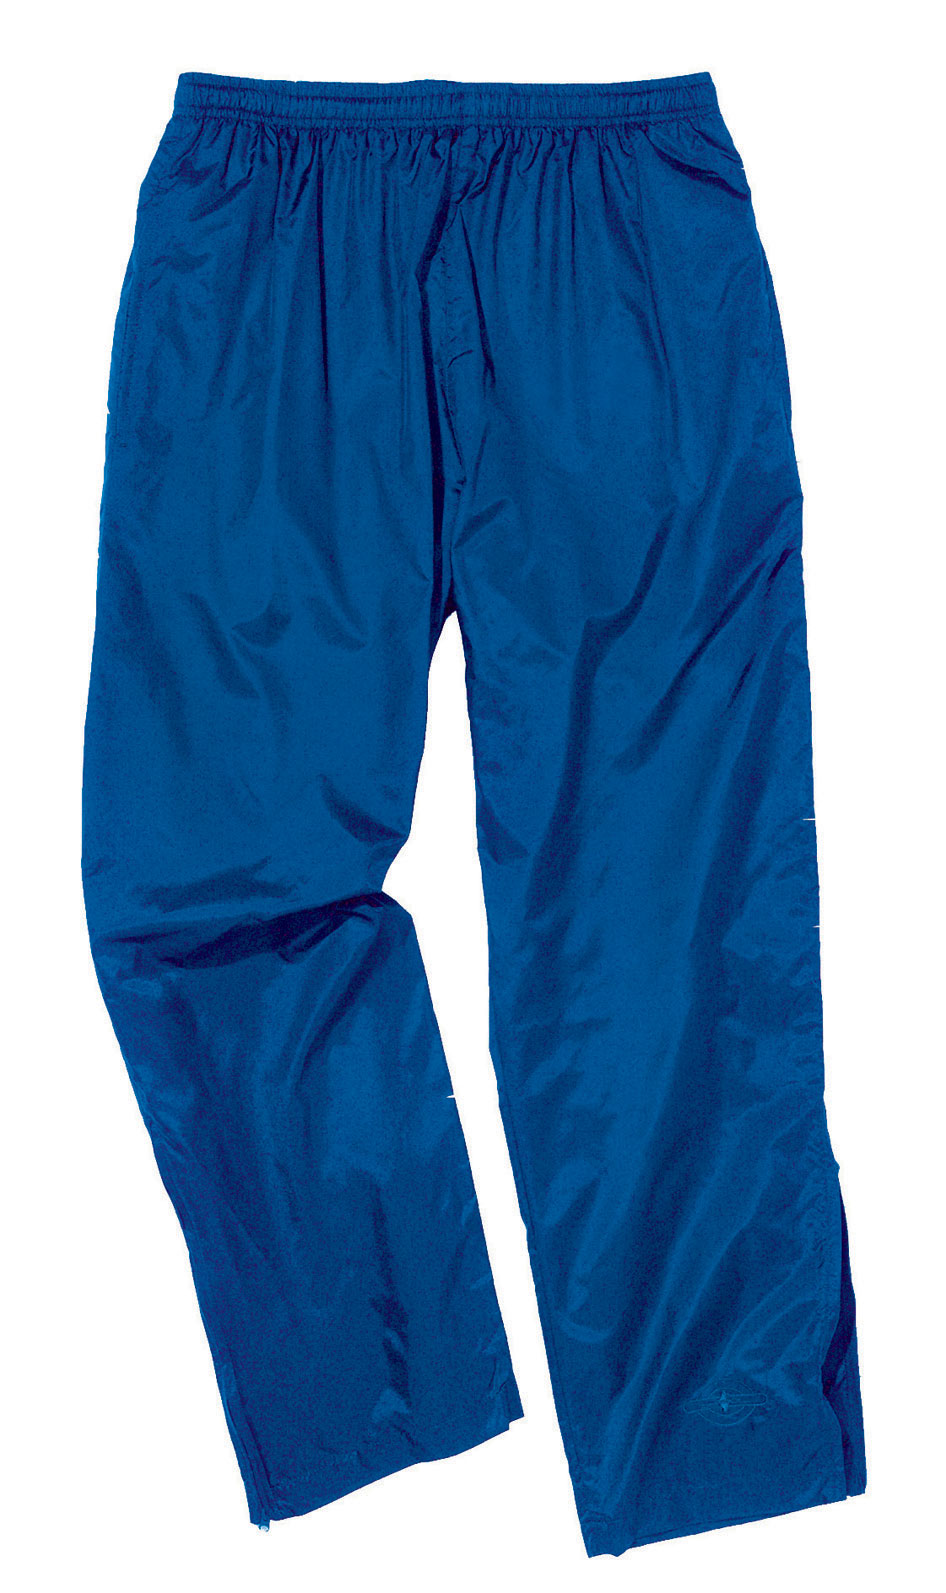 Youth Pacer Warm-up Pants by Charles River Apparel